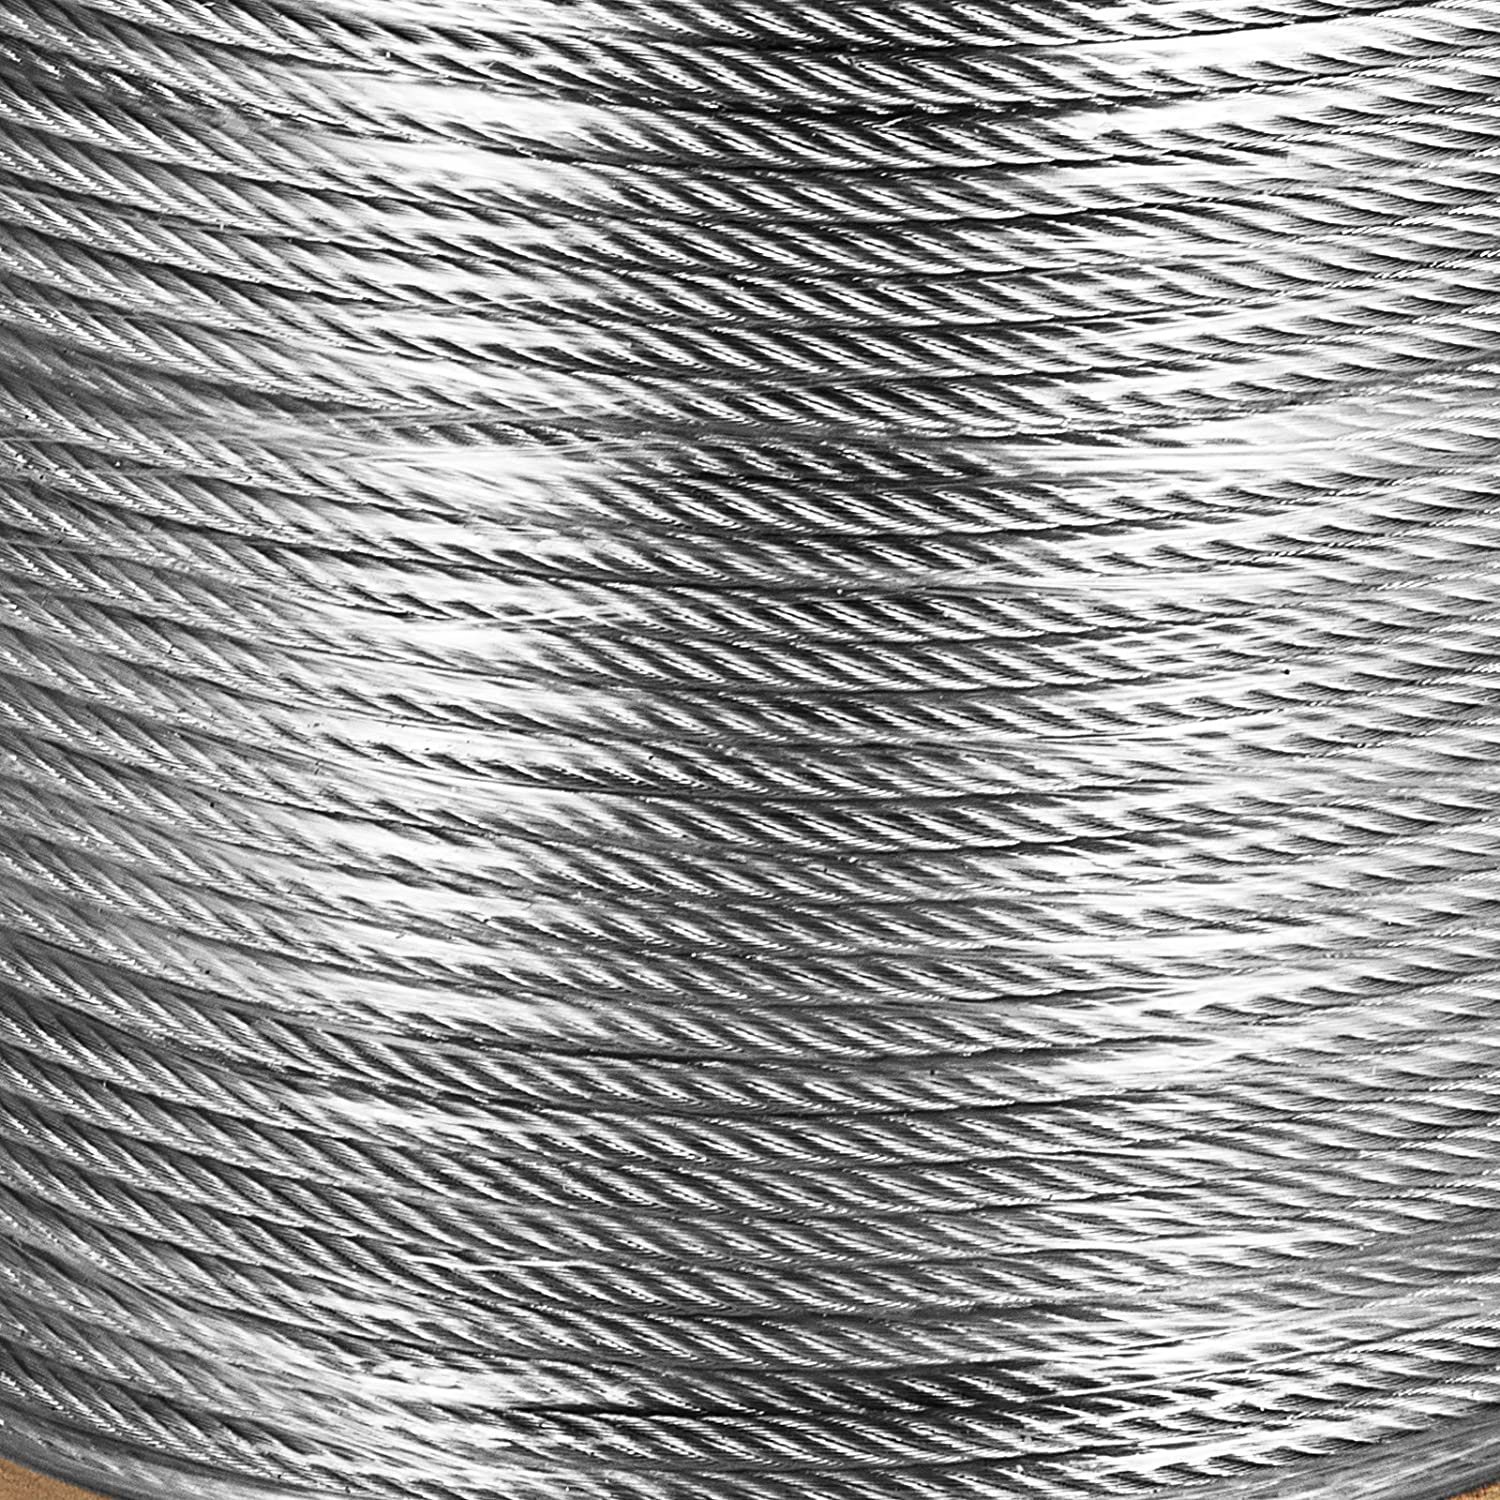 BestEquip/316 Stainless Steel Cable 700FT Stainless Steel Wire Rope 1//8 Inch 1x19 Steel Cable for Railing Decking DIY Balustrade 700FT